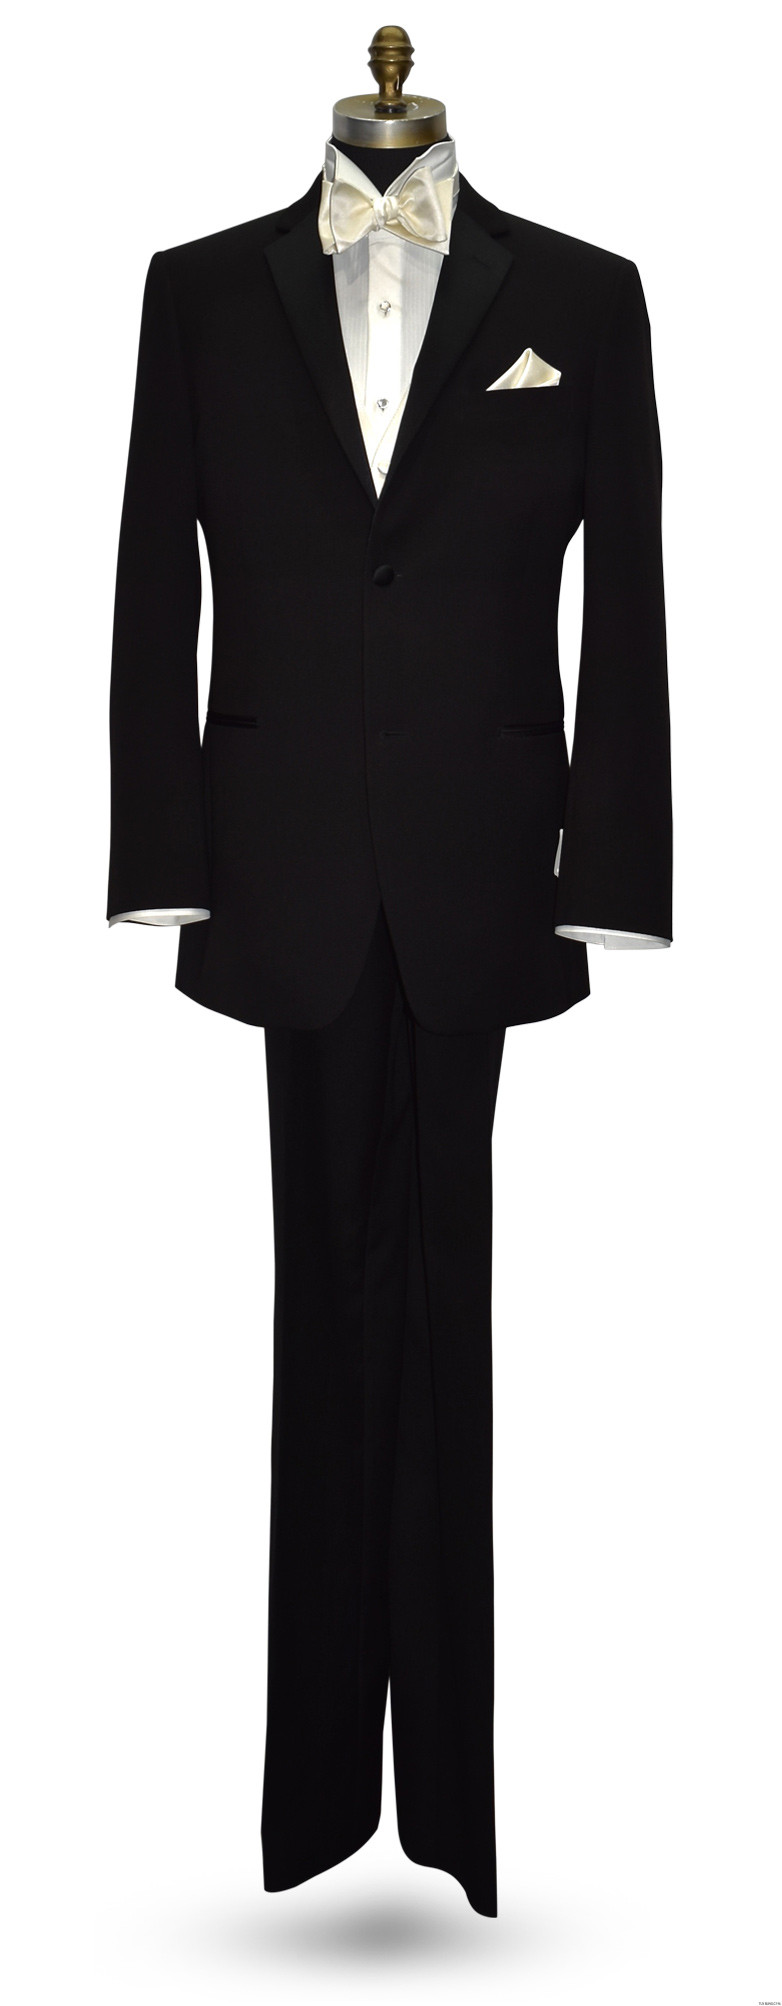 men's black tuxedo with off-white ivory vest and off-white ivory self-tie bowtie at tuxbling.com